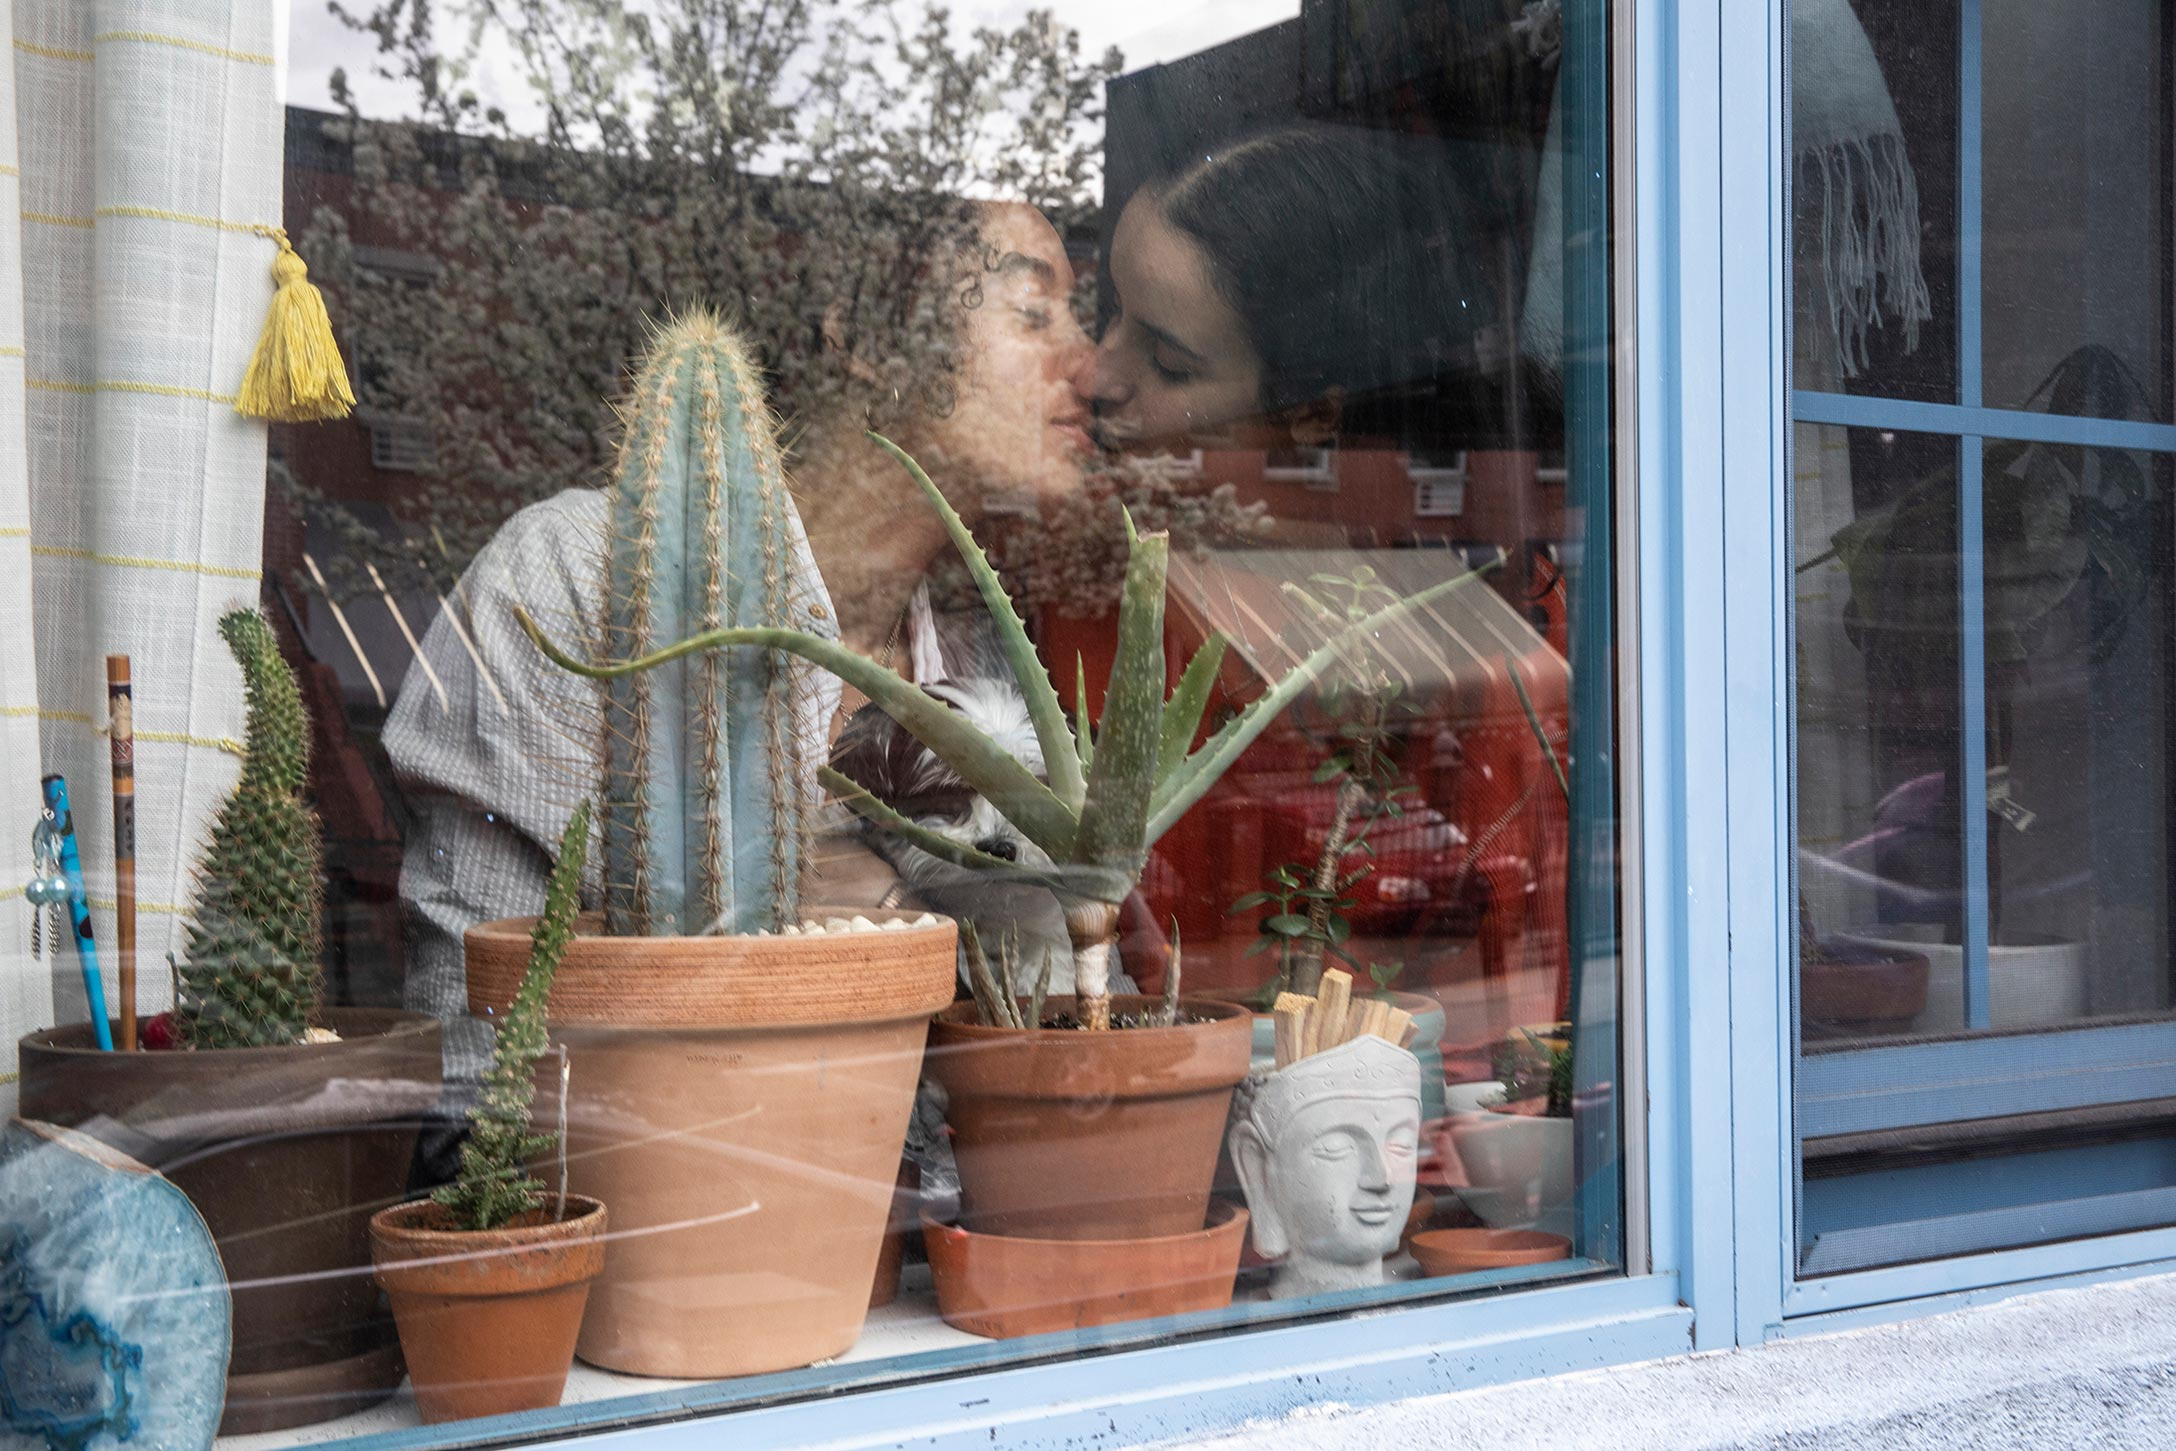 From the outside of the window, a couple are seen kissing.